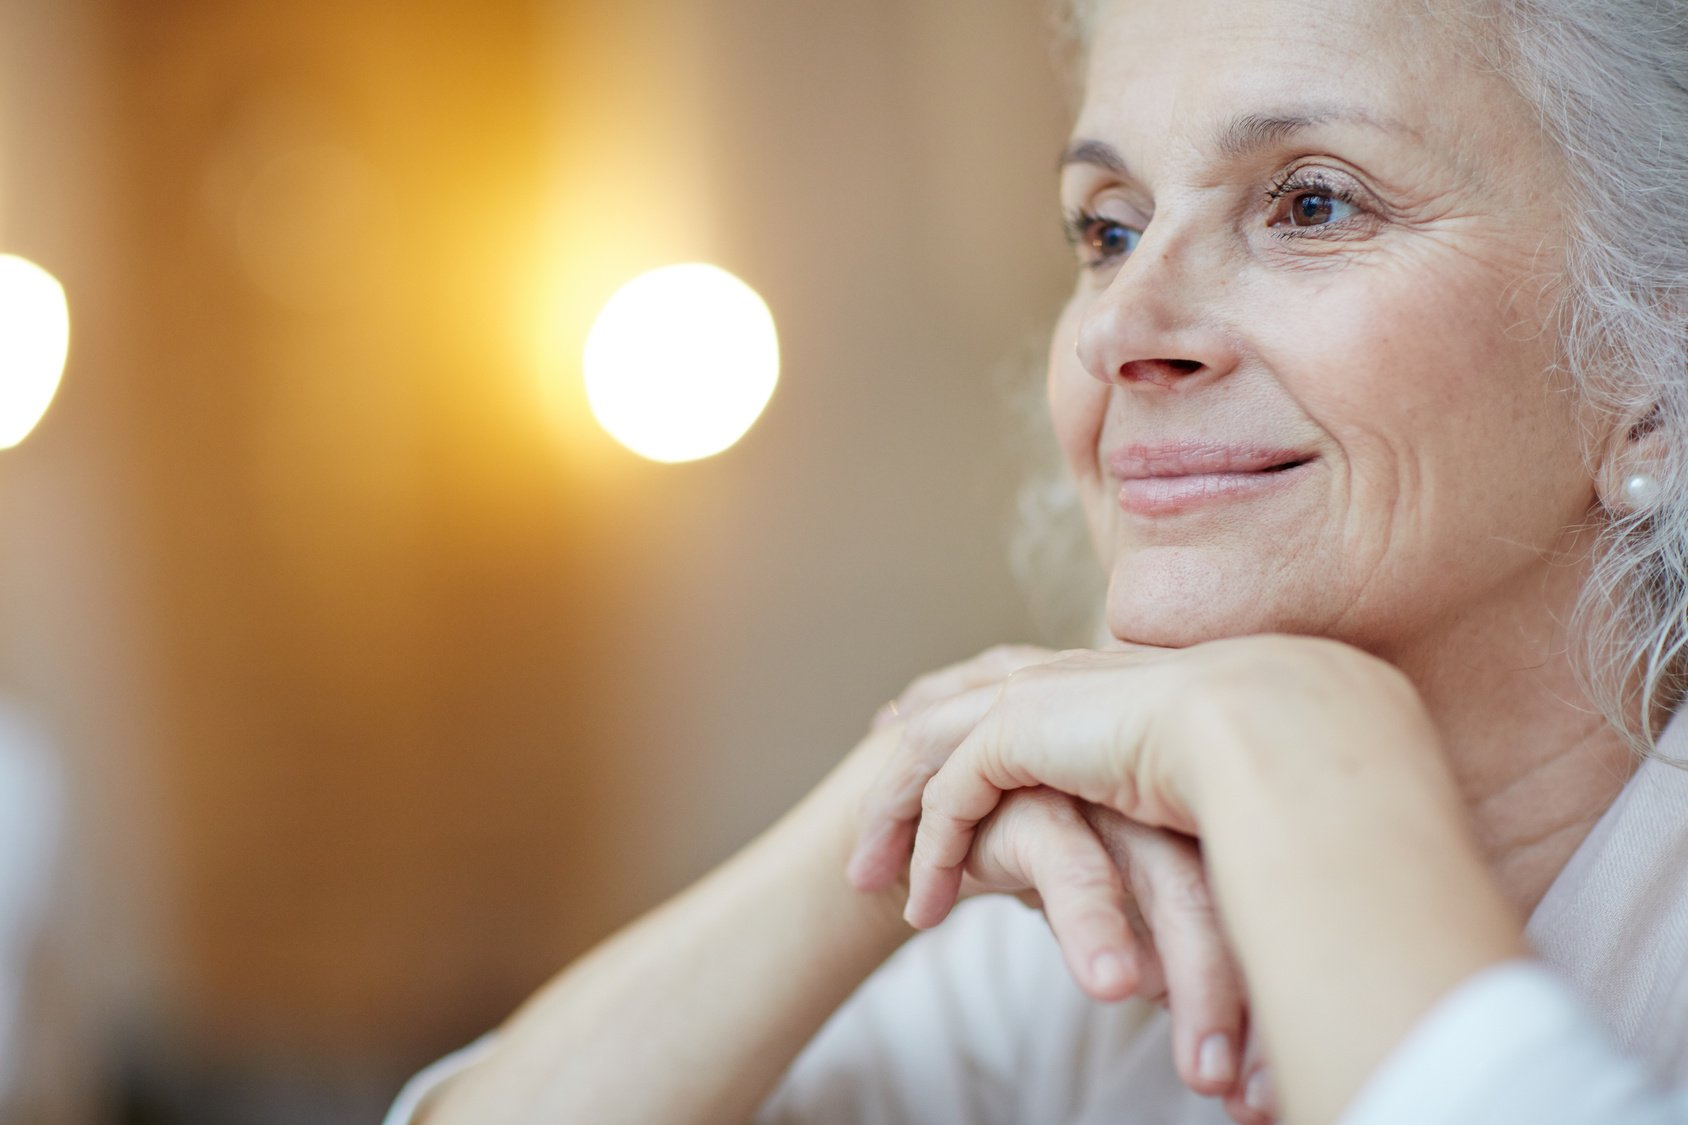 Top 7 Duties to Look for While Hiring Senior Caregivers